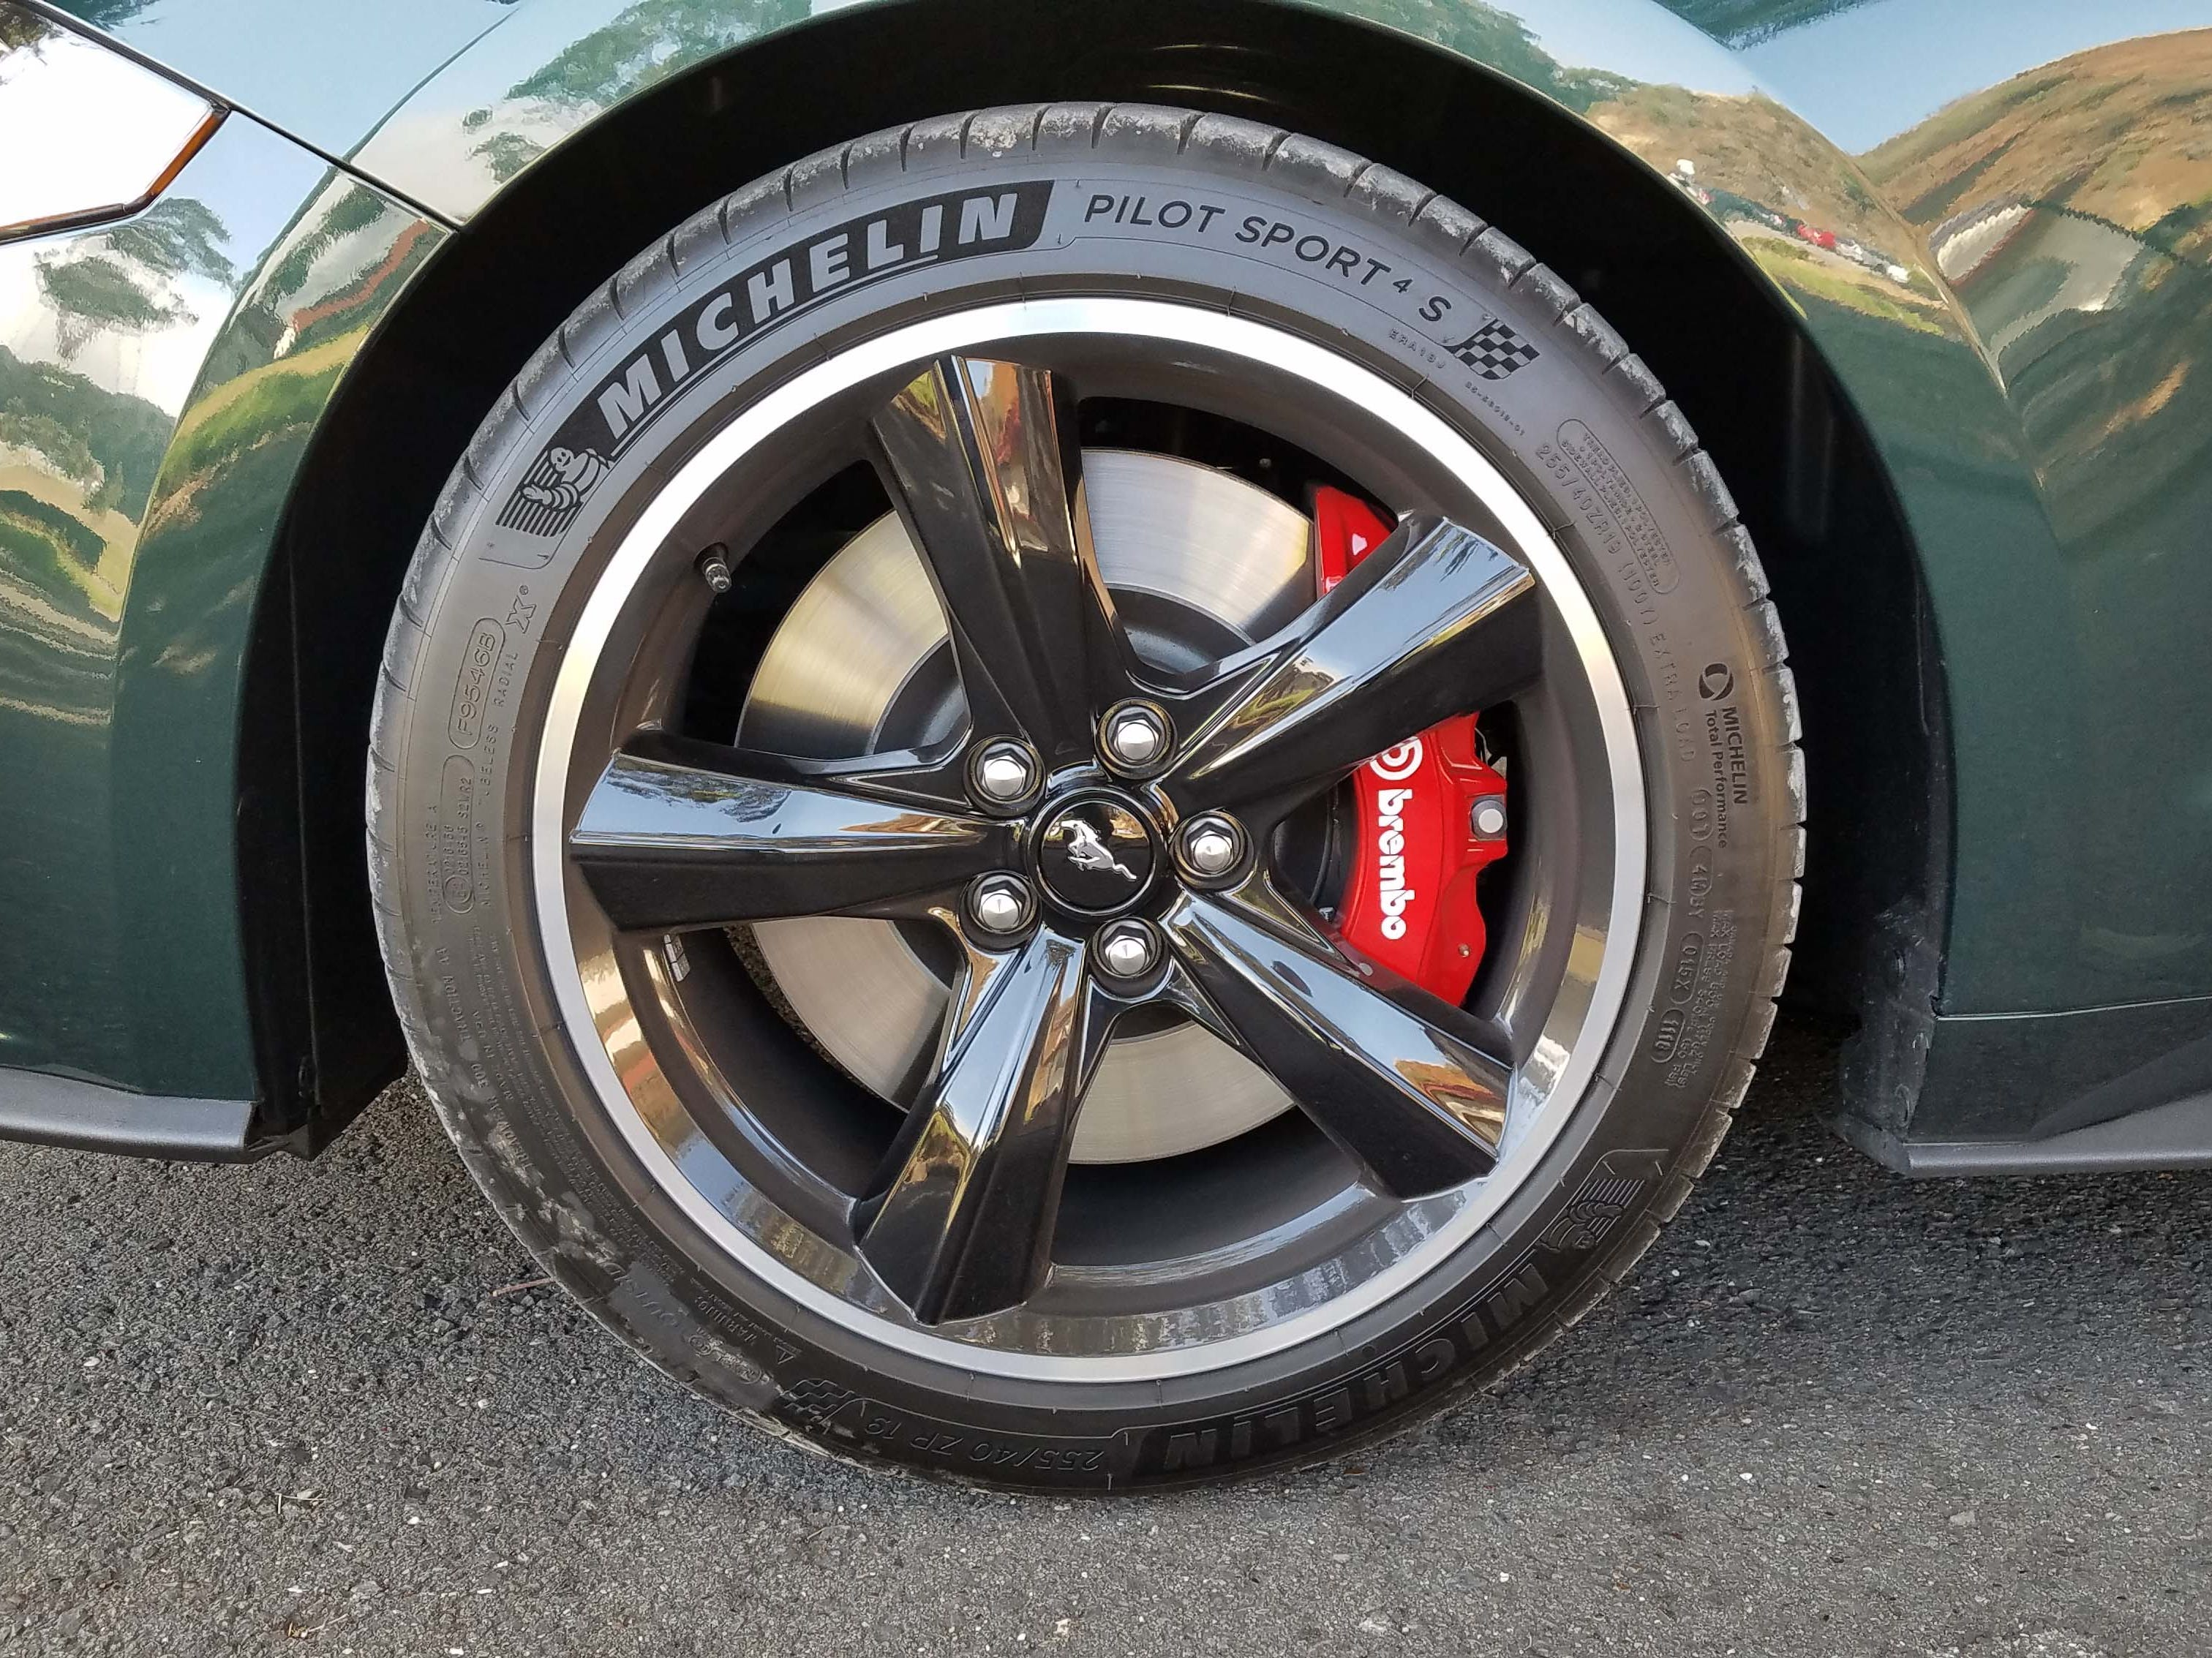 The Michelin Pilot Sport 4S tires found on the 2019 Ford Mustang Bullitt are not the stickiest available for a Mustang, but they are complemented by excellent Brembo brakes and the signature, 19-inch, black Bullitt wheels.